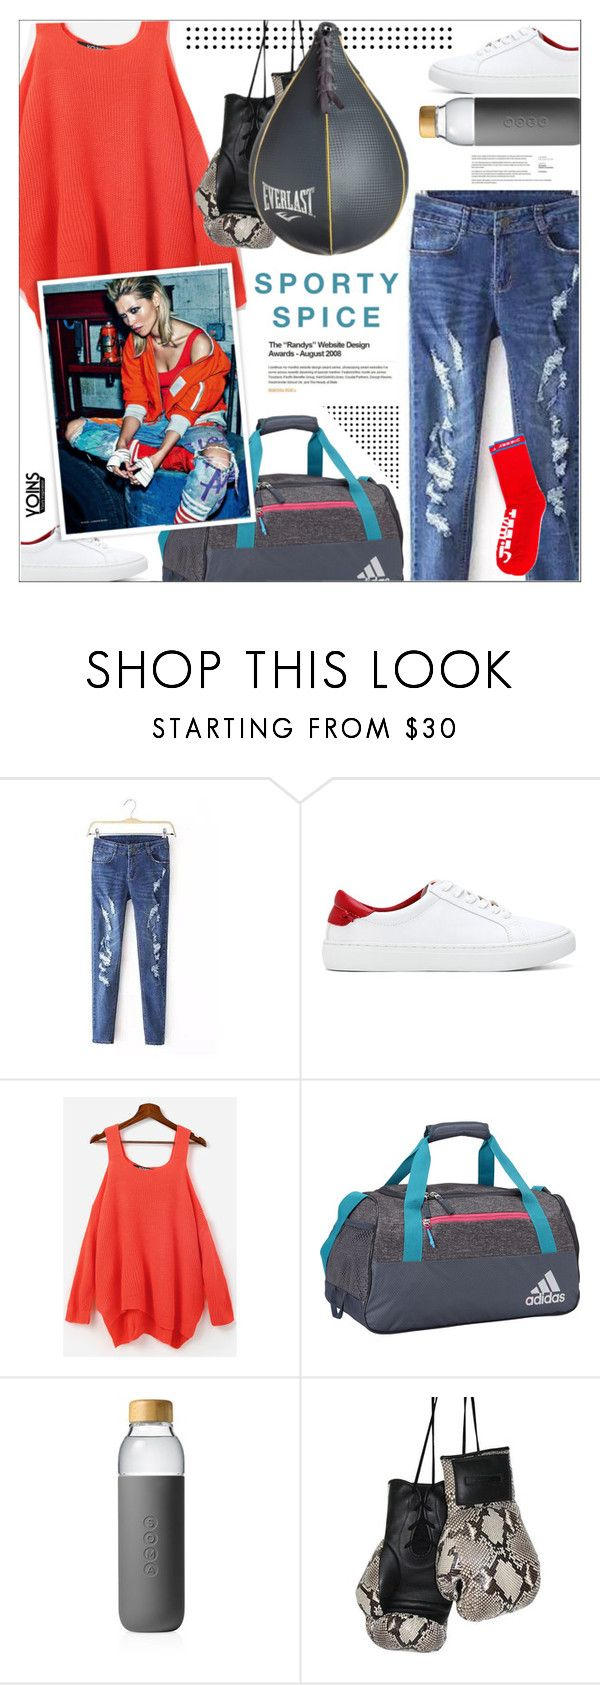 """""""Yoins 3.30"""" by monazor ❤ liked on Polyvore featuring adidas, Soma, Elisabeth Weinstock, Everlast, yoins, yoinscollection and loveyoins"""